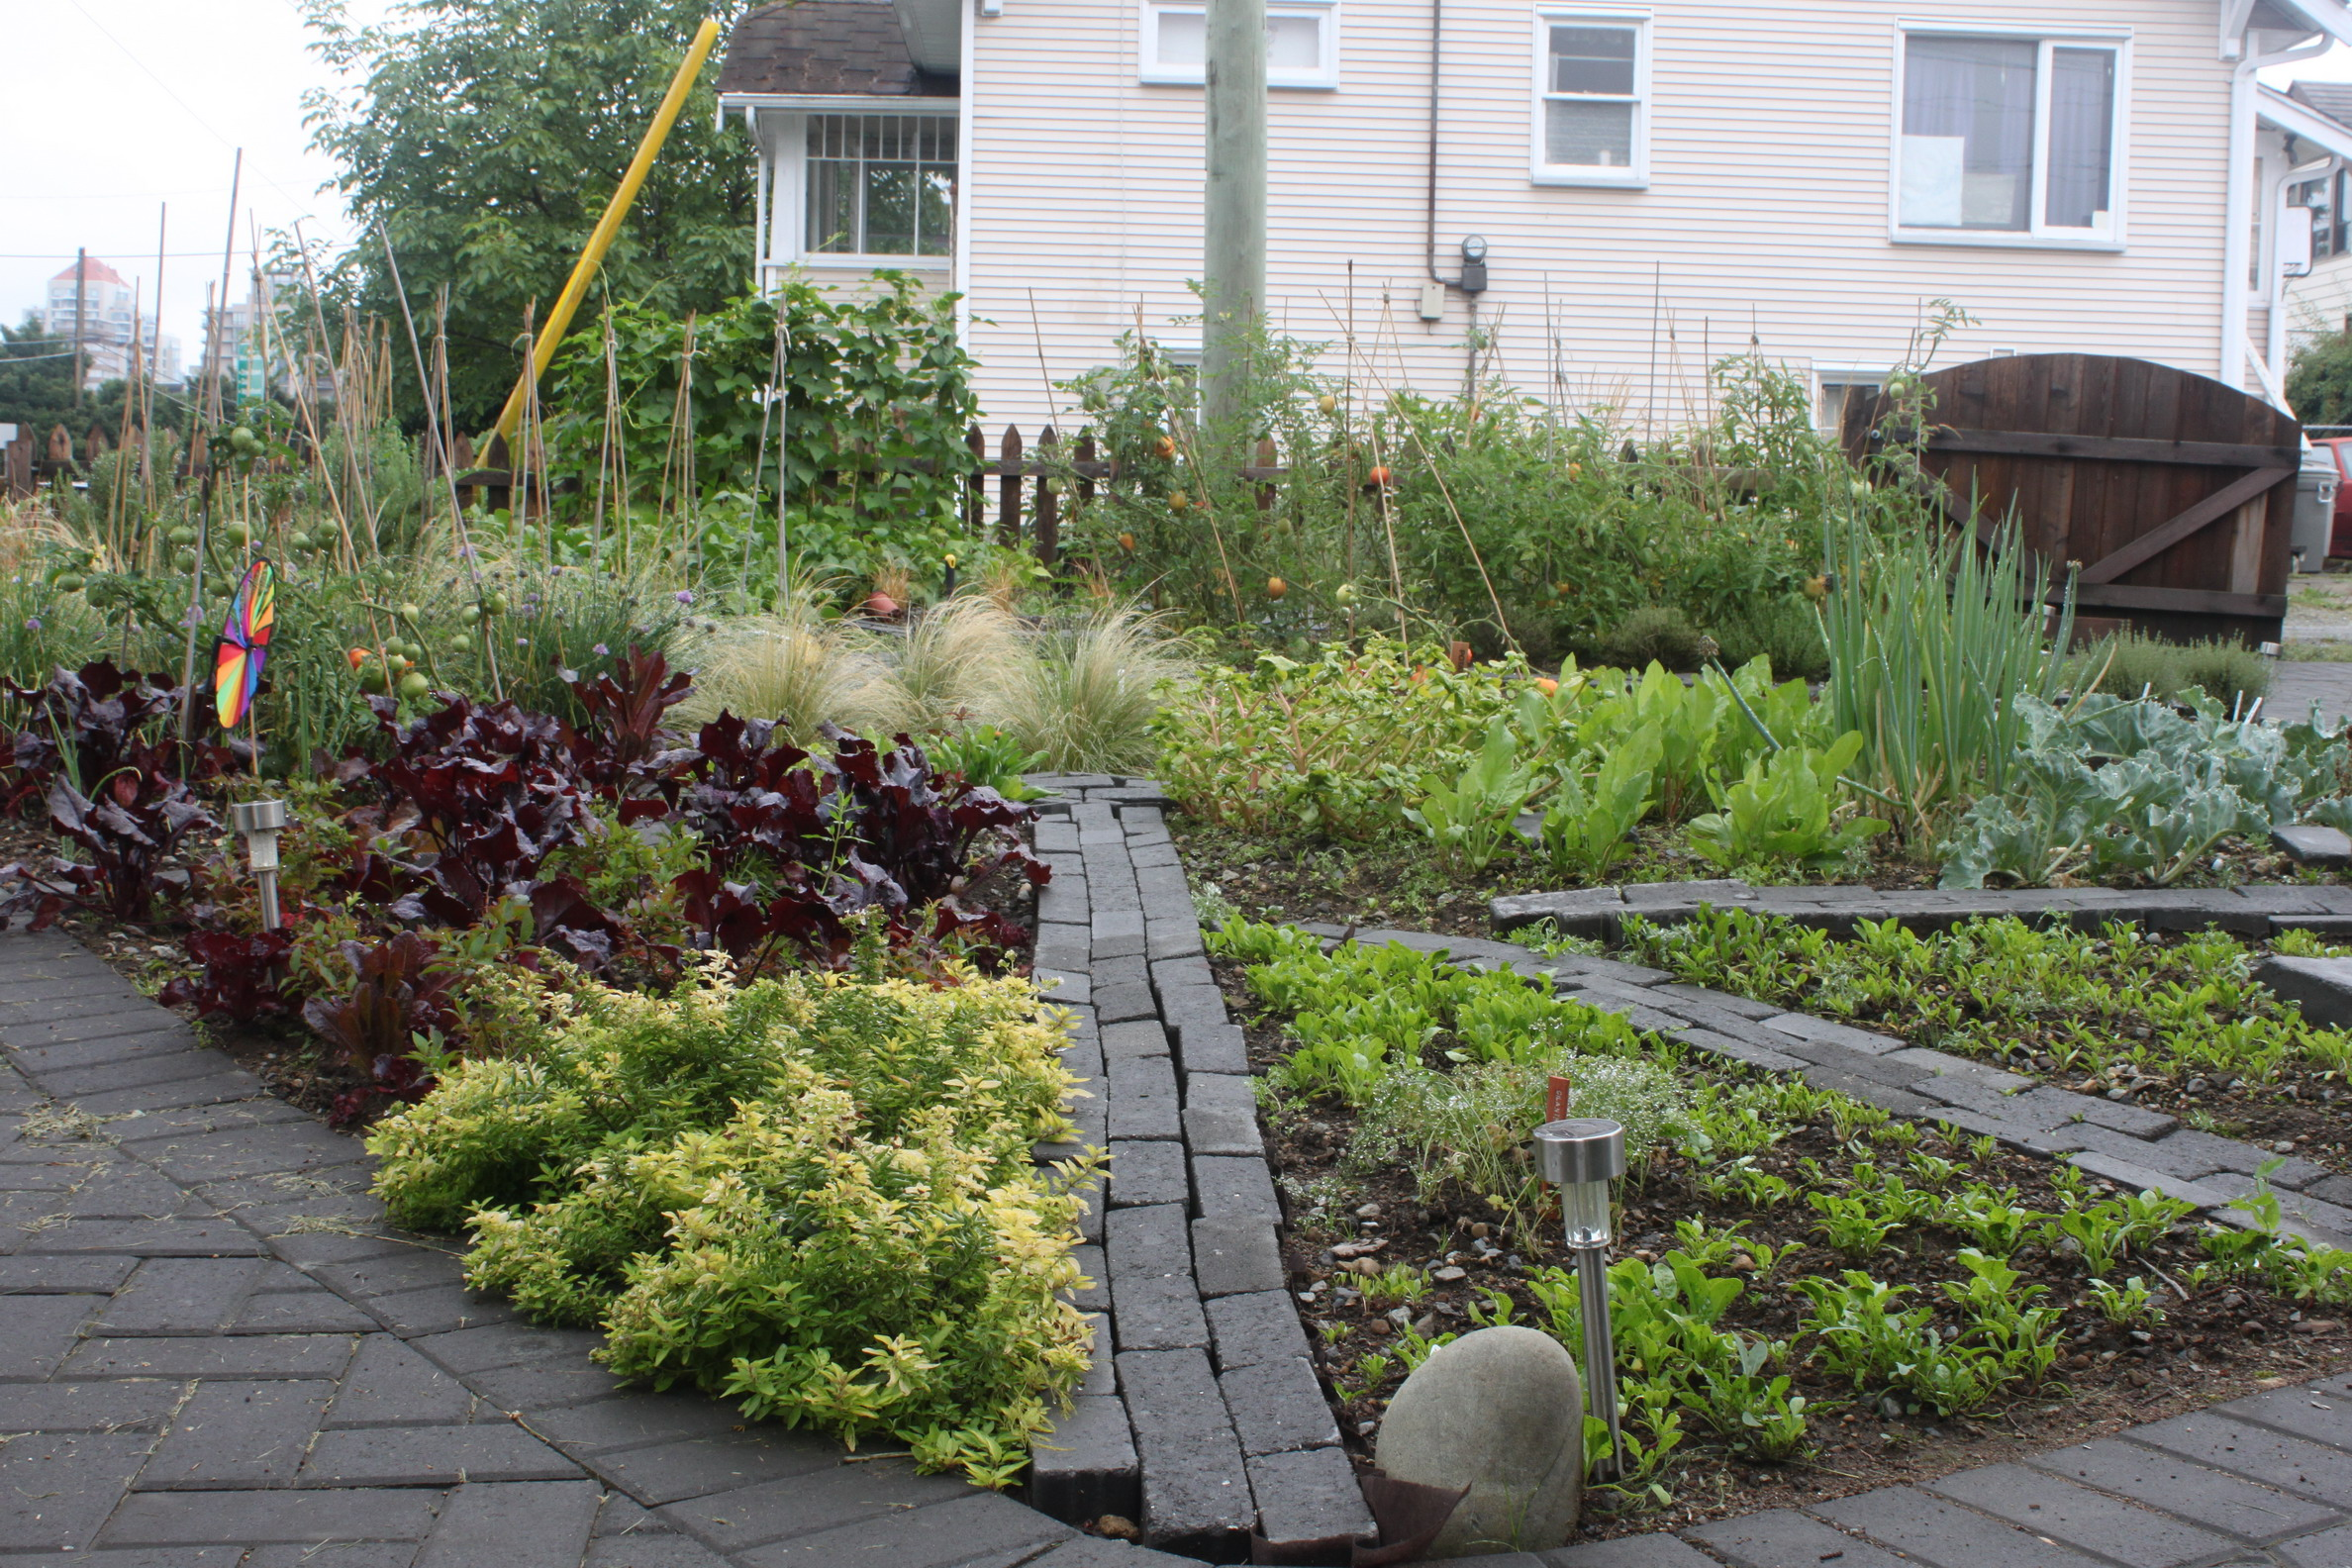 Front yard vegetable garden designs pdf - Practical ideas to decorate front yards in the city ...